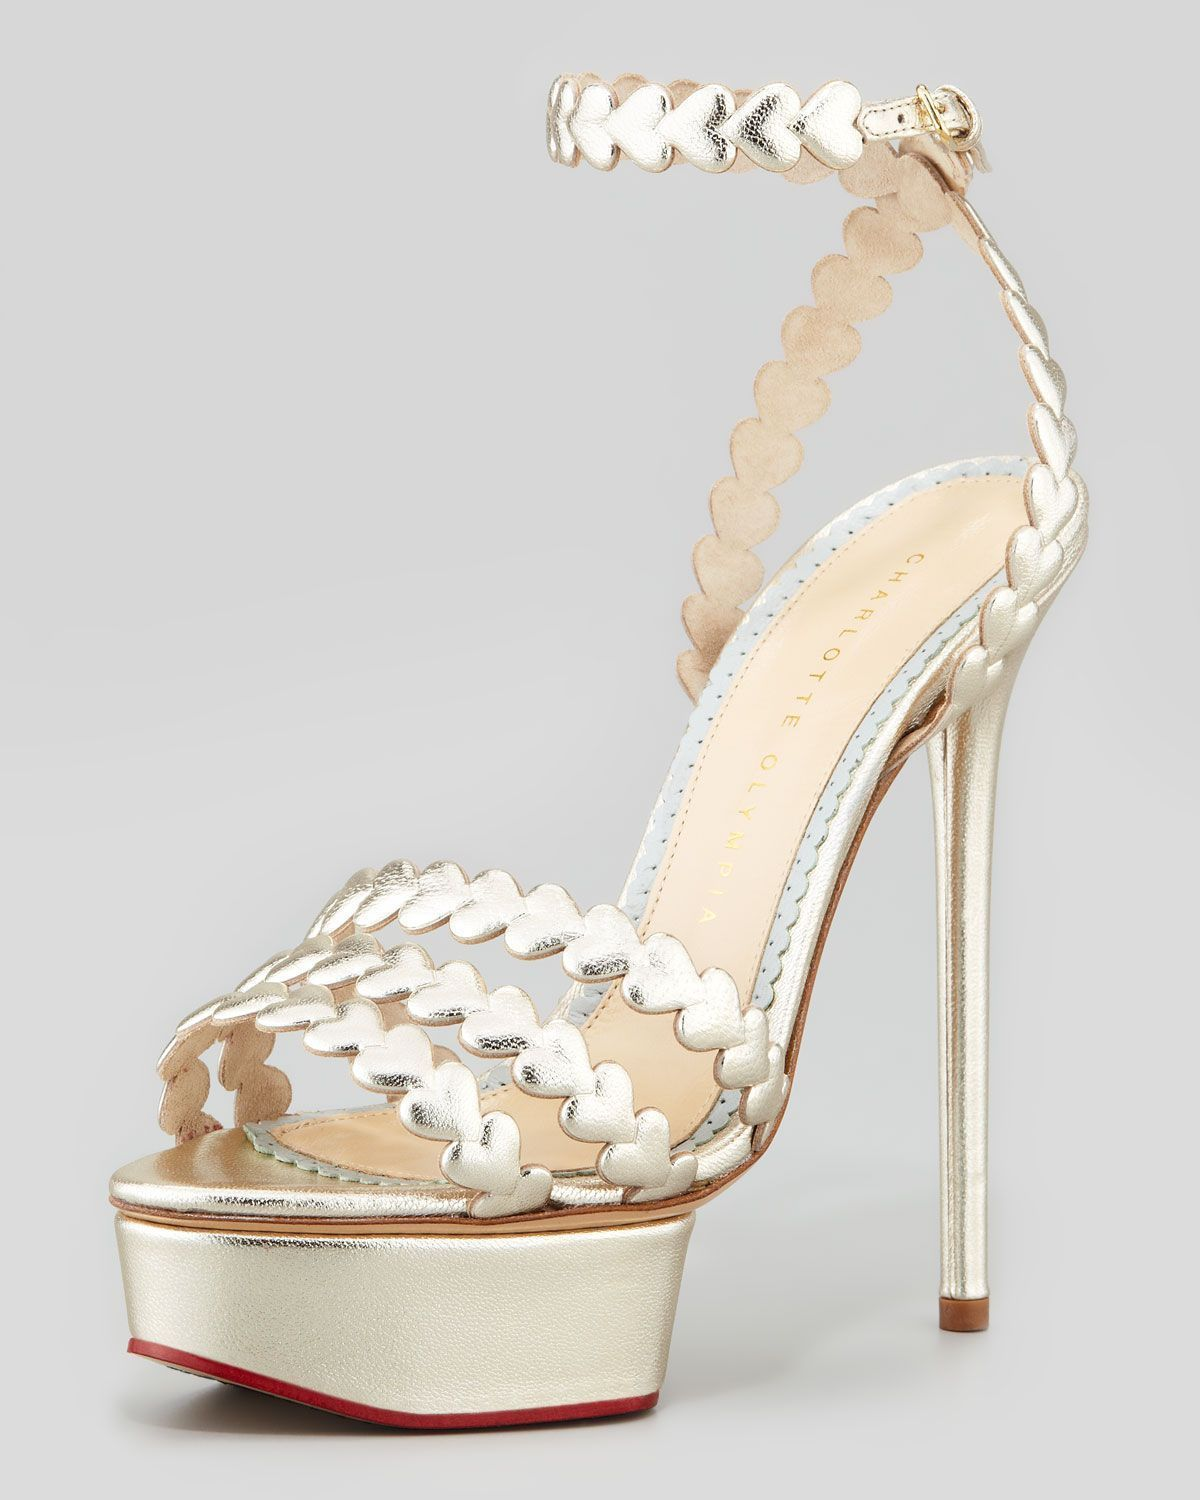 e5bf19e1d Charlotte Olympia I Heart You Metallic Platform Sandal Platinum in Silver  (PLATINUM) | Lyst #CharlotteOlympiaHeels